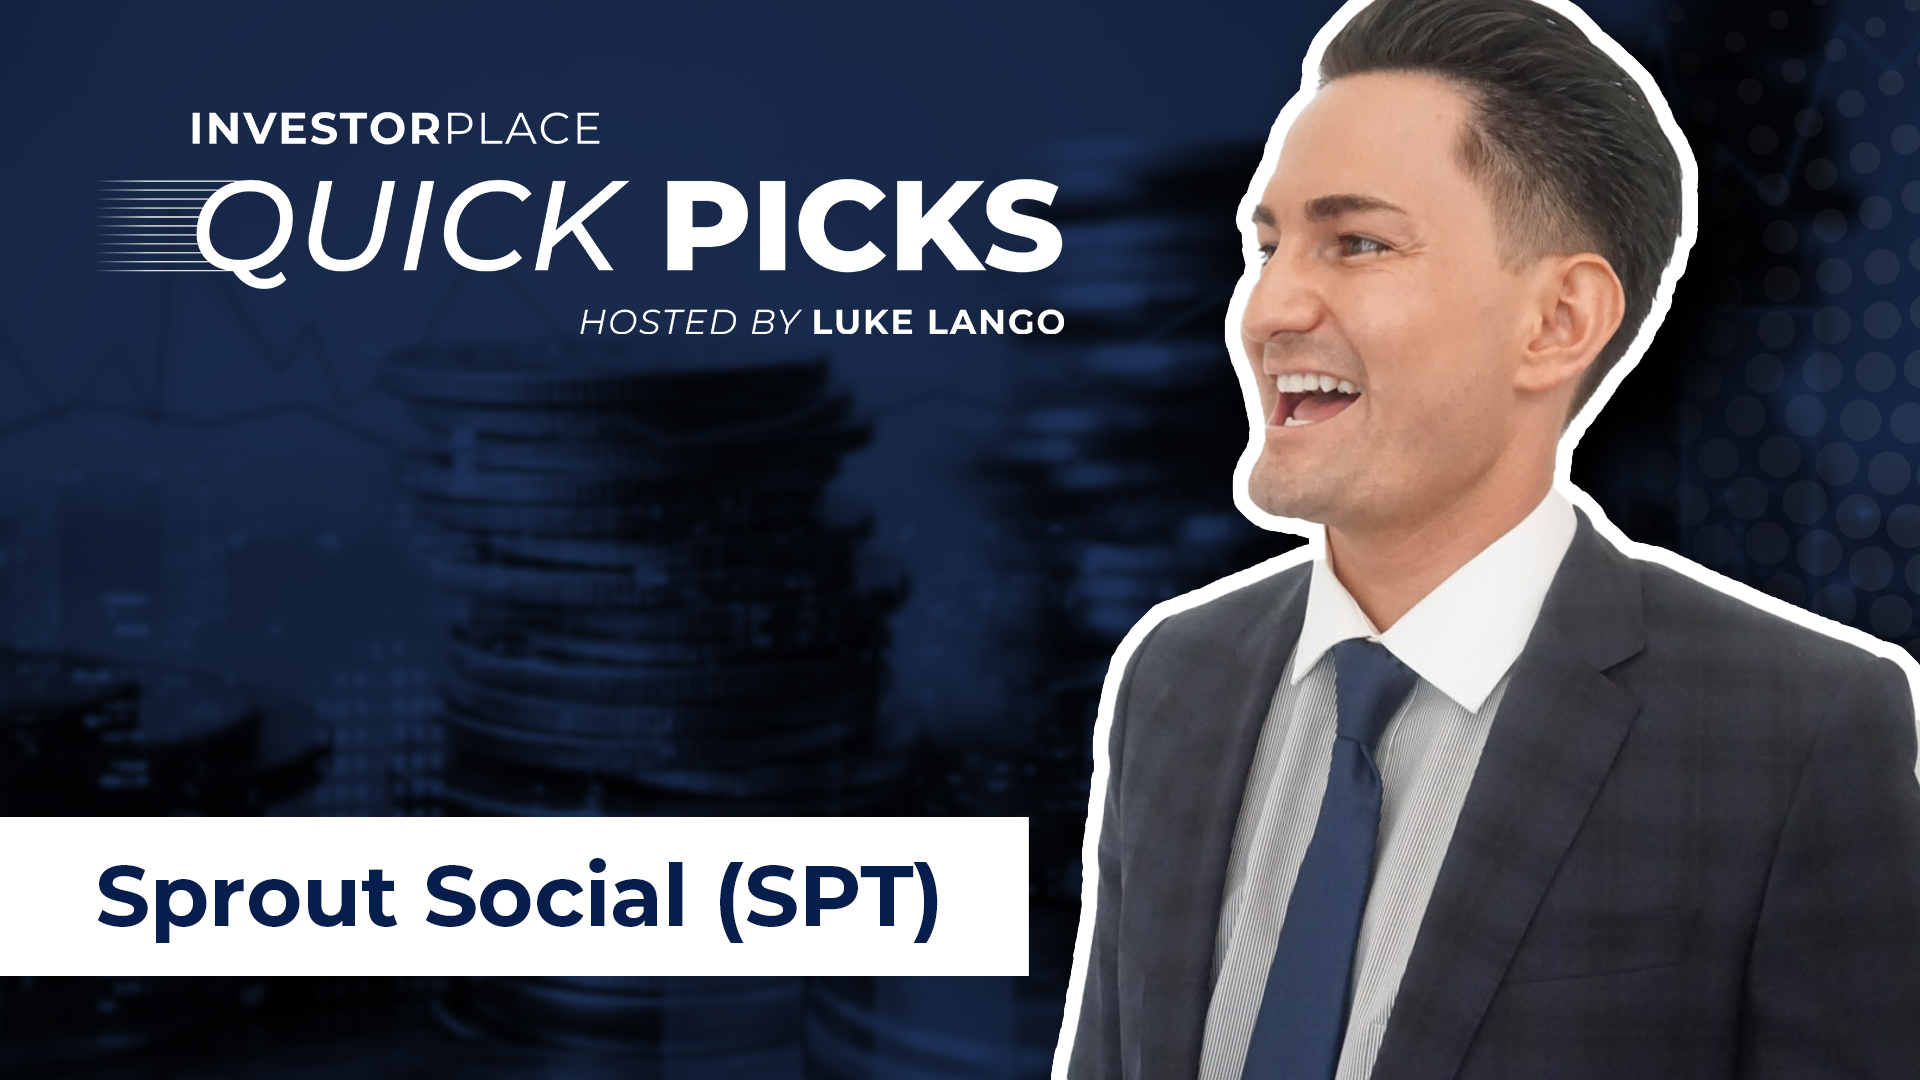 Sprout Social thumbnail from Quick Picks video